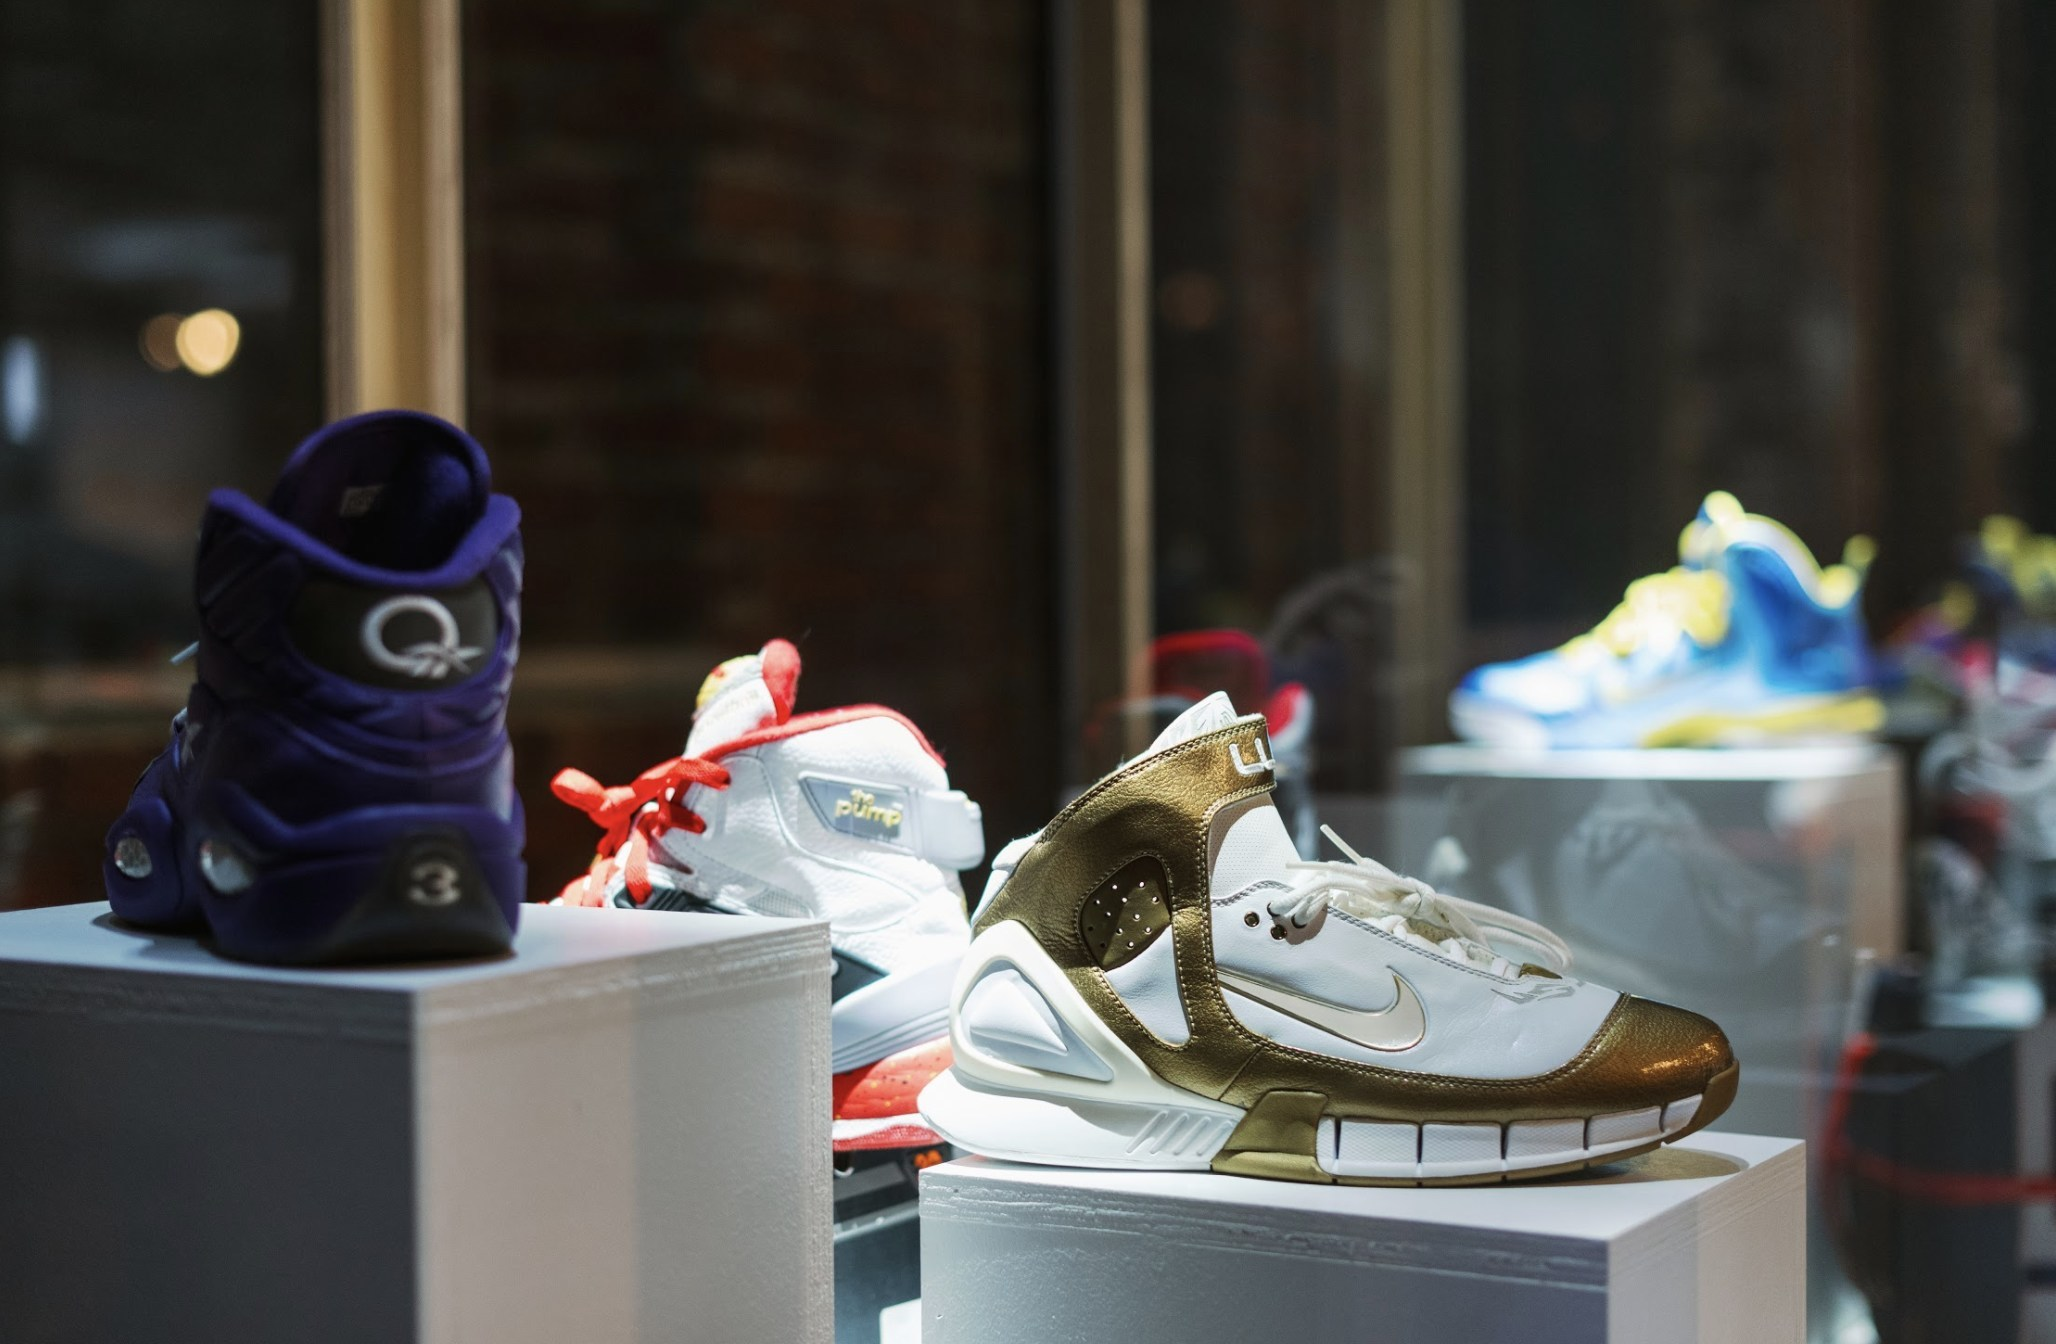 96fe19f93a7 eBay Launches Exclusive, Limited Edition Drop in Celebration of All-Star  Weekend 2019